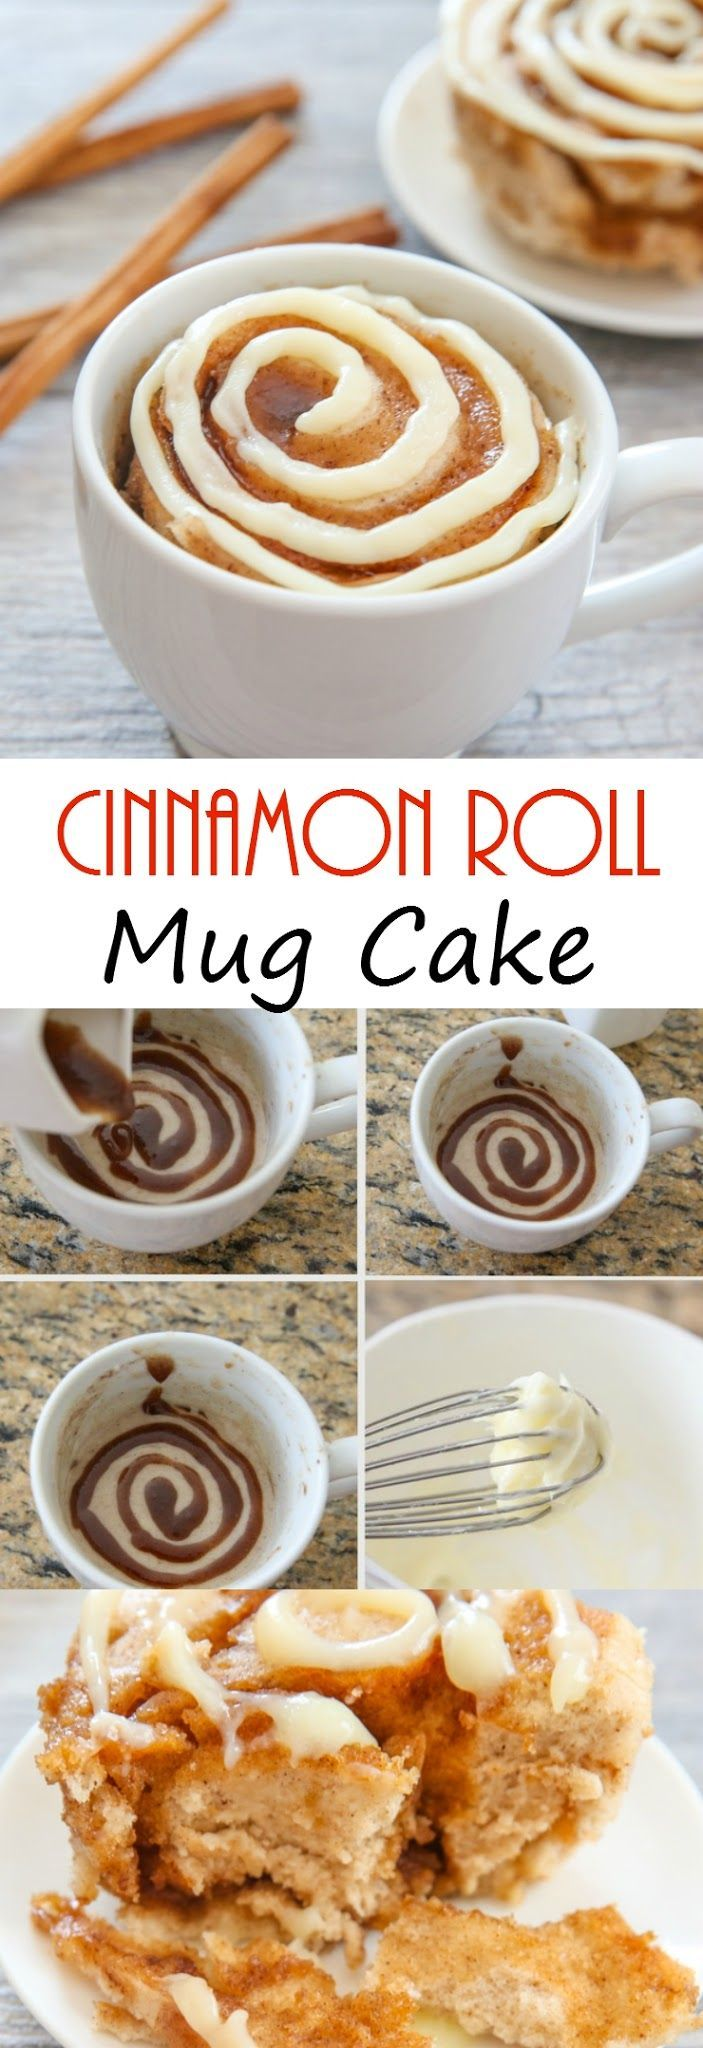 Cinnamon Roll Mug  (create a protein version to bake in muffin tins that freezes well.)